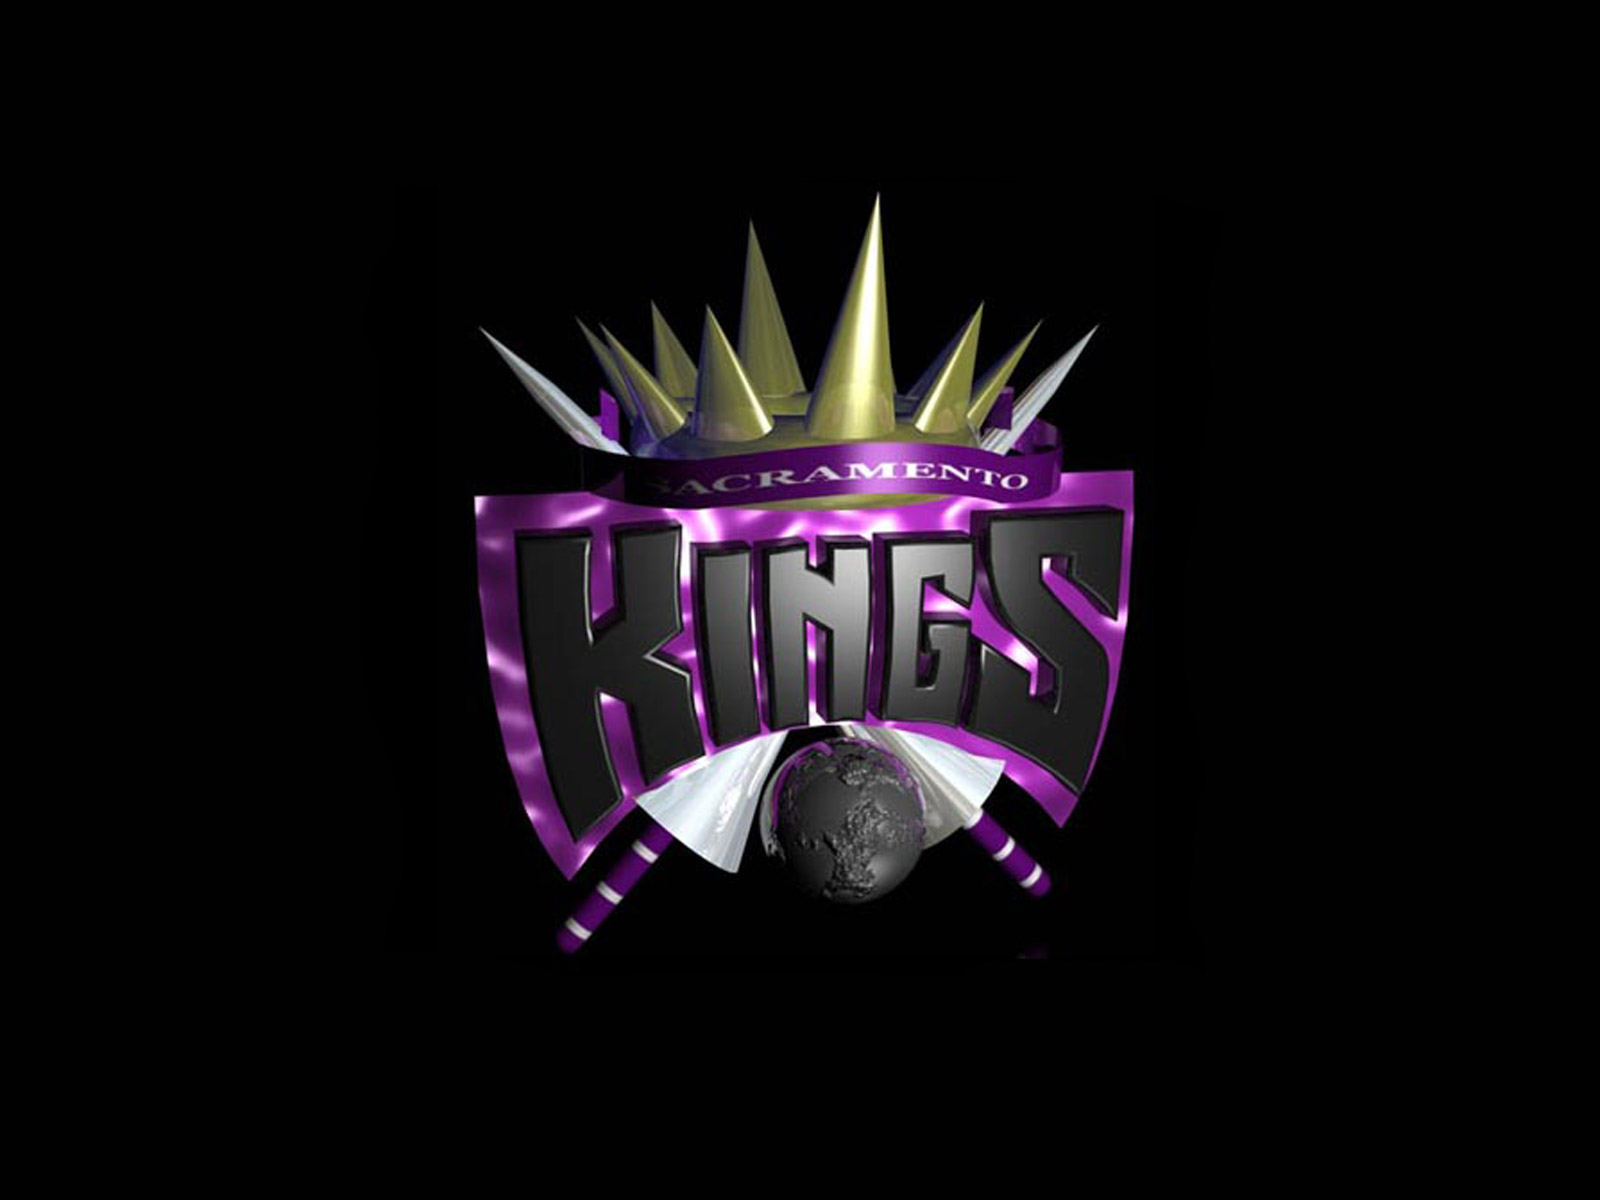 Sacramento Kings Logo Wallpaper Basketball Wallpapers at 1600x1200